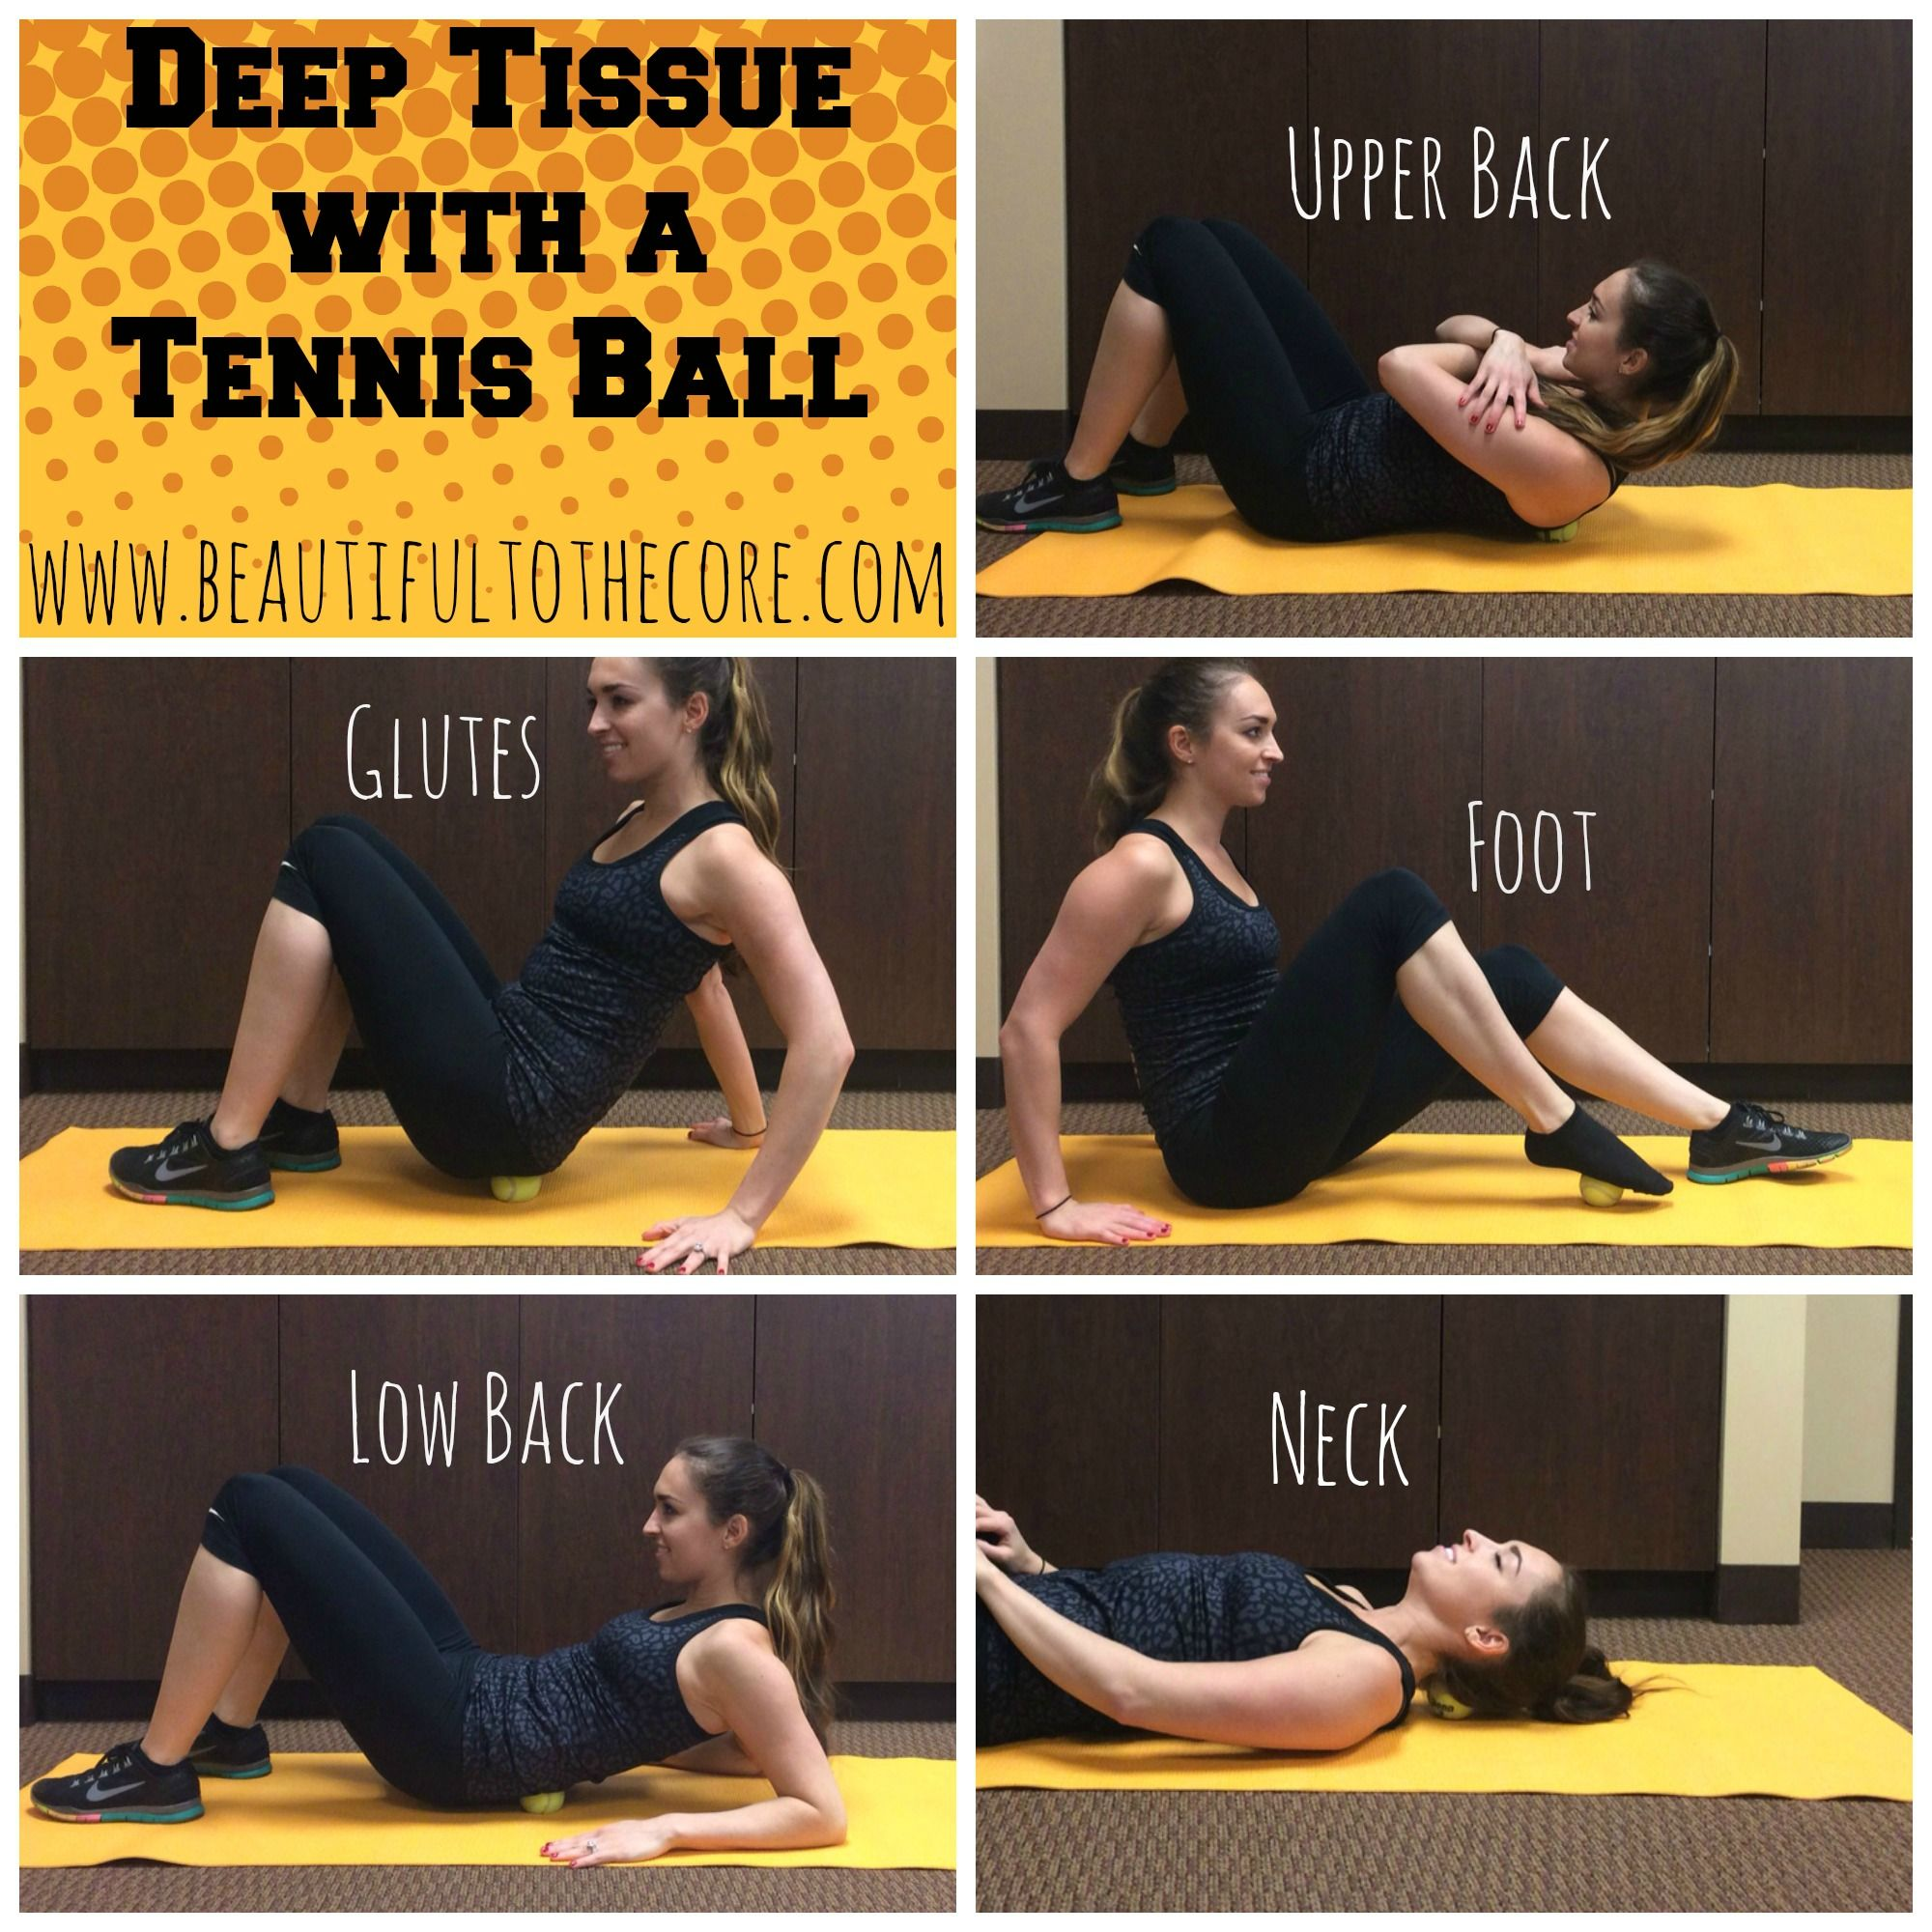 Deep Tissue With A Tennis Ball Beautiful To The Core Intense Workout Massage Therapy Massage Ball